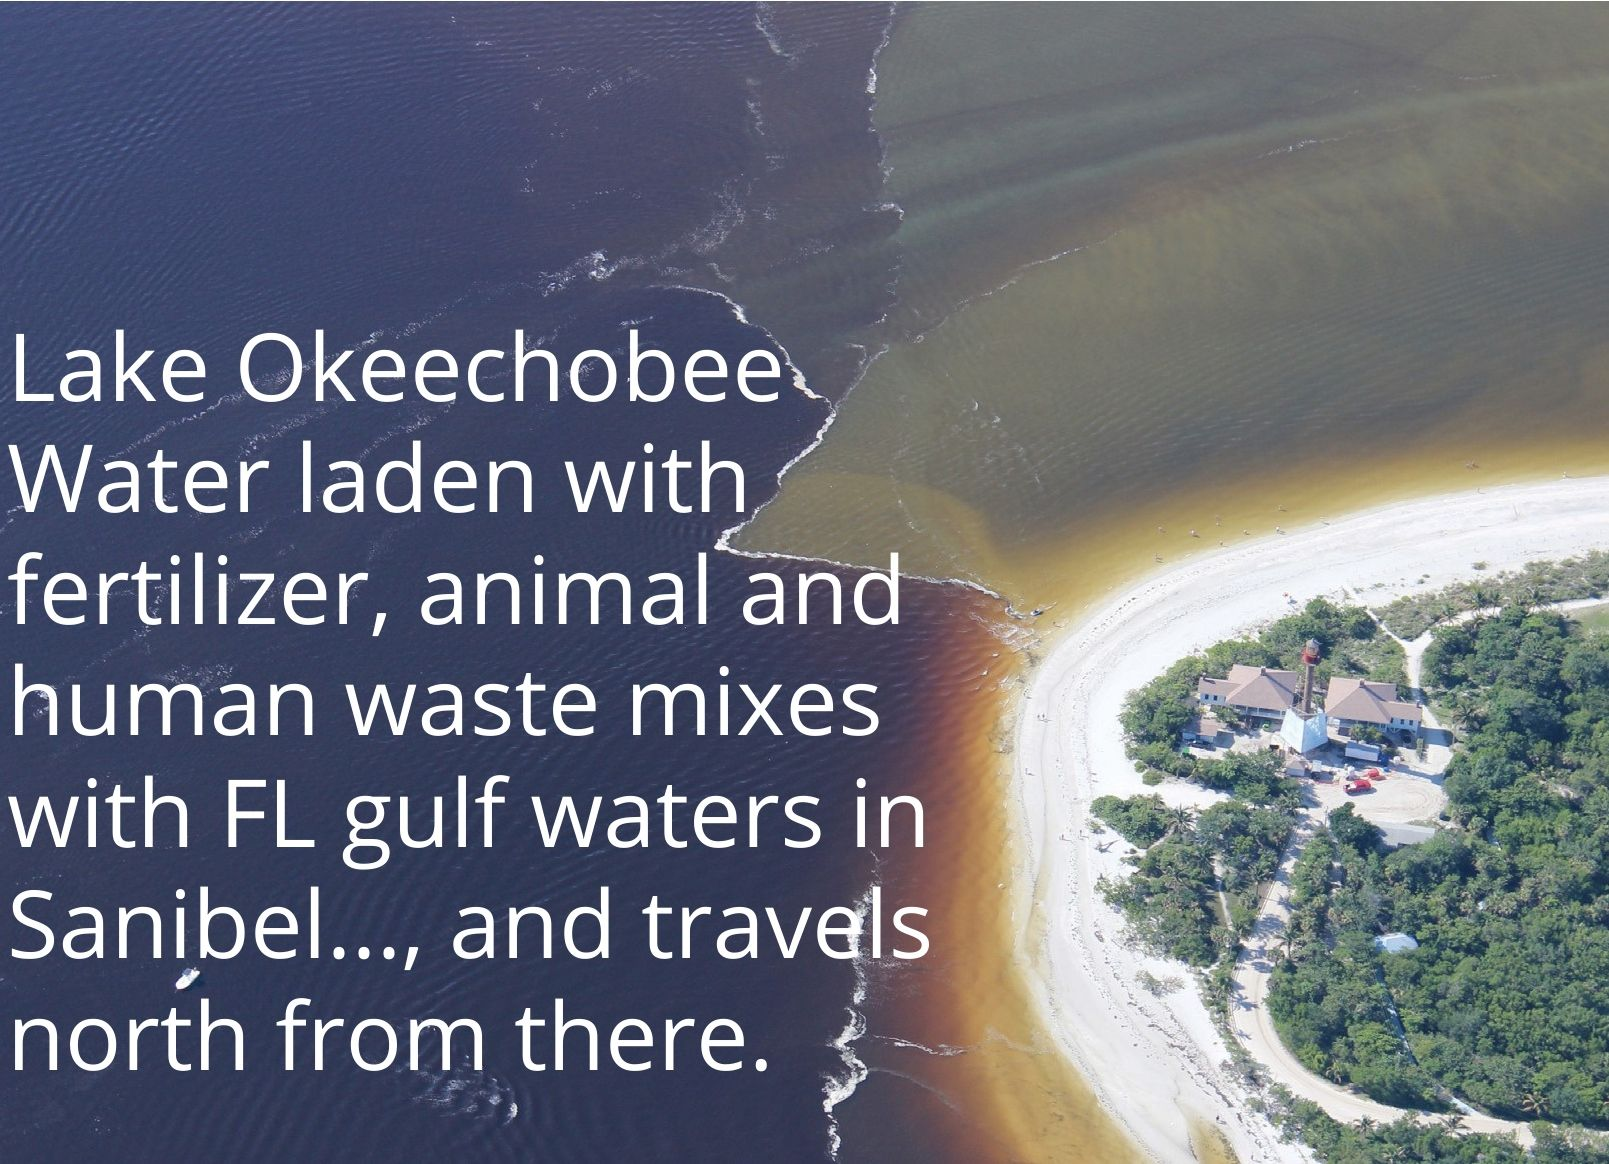 Lake Okeechobee Polluted Waters Are Released Into Rivers